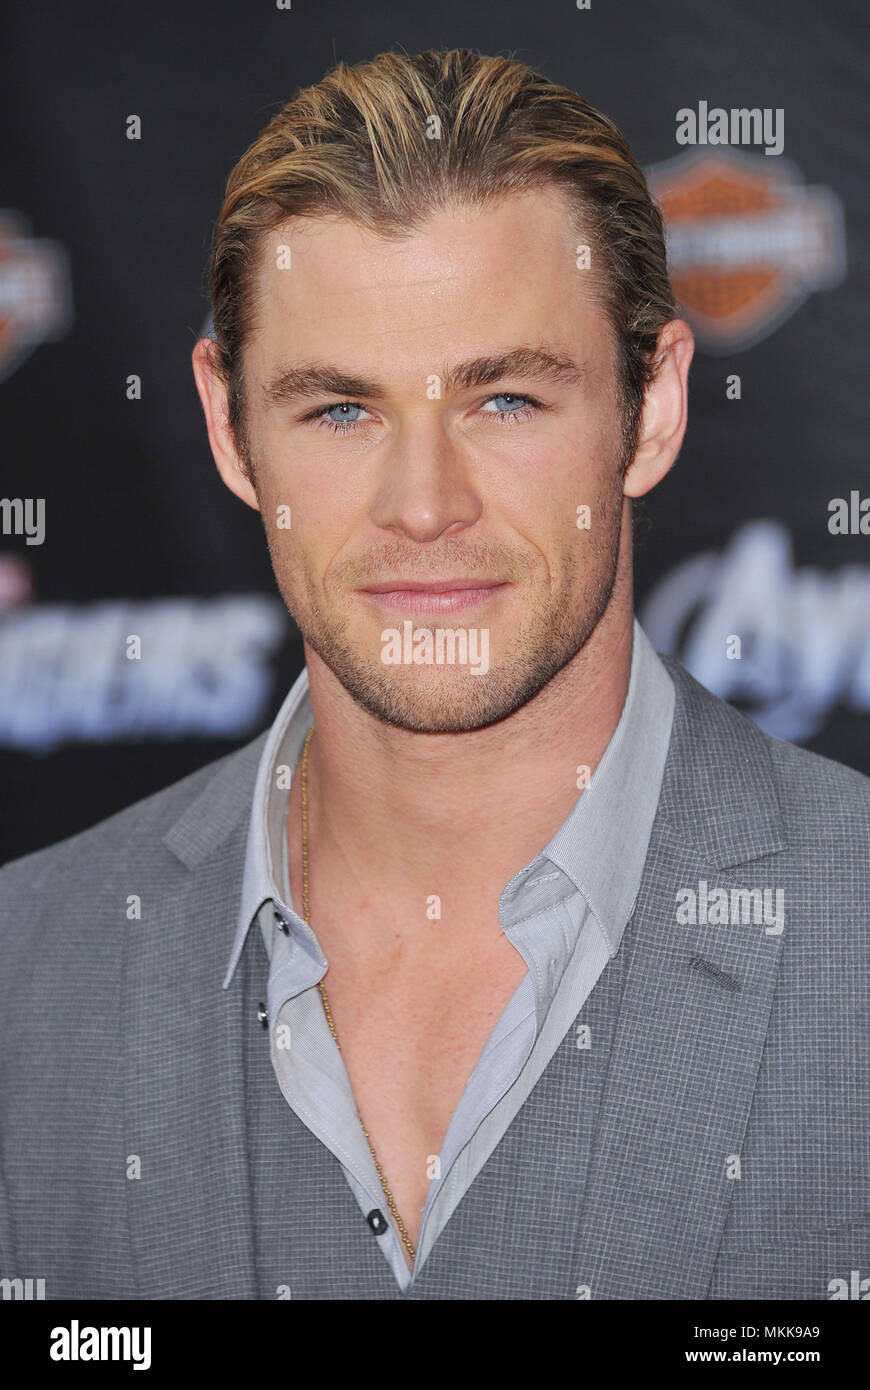 Chris Hemsworth  at the Avengers Premiere at the El Capitan Theatre In Los Angeles.Chris Hemsworth  38 Red Carpet Event, Vertical, USA, Film Industry, Celebrities,  Photography, Bestof, Arts Culture and Entertainment, Topix Celebrities fashion /  Vertical, Best of, Event in Hollywood Life - California,  Red Carpet and backstage, USA, Film Industry, Celebrities,  movie celebrities, TV celebrities, Music celebrities, Photography, Bestof, Arts Culture and Entertainment,  Topix, headshot, vertical, one person,, from the year , 2012, inquiry tsuni@Gamma-USA.com Stock Photo